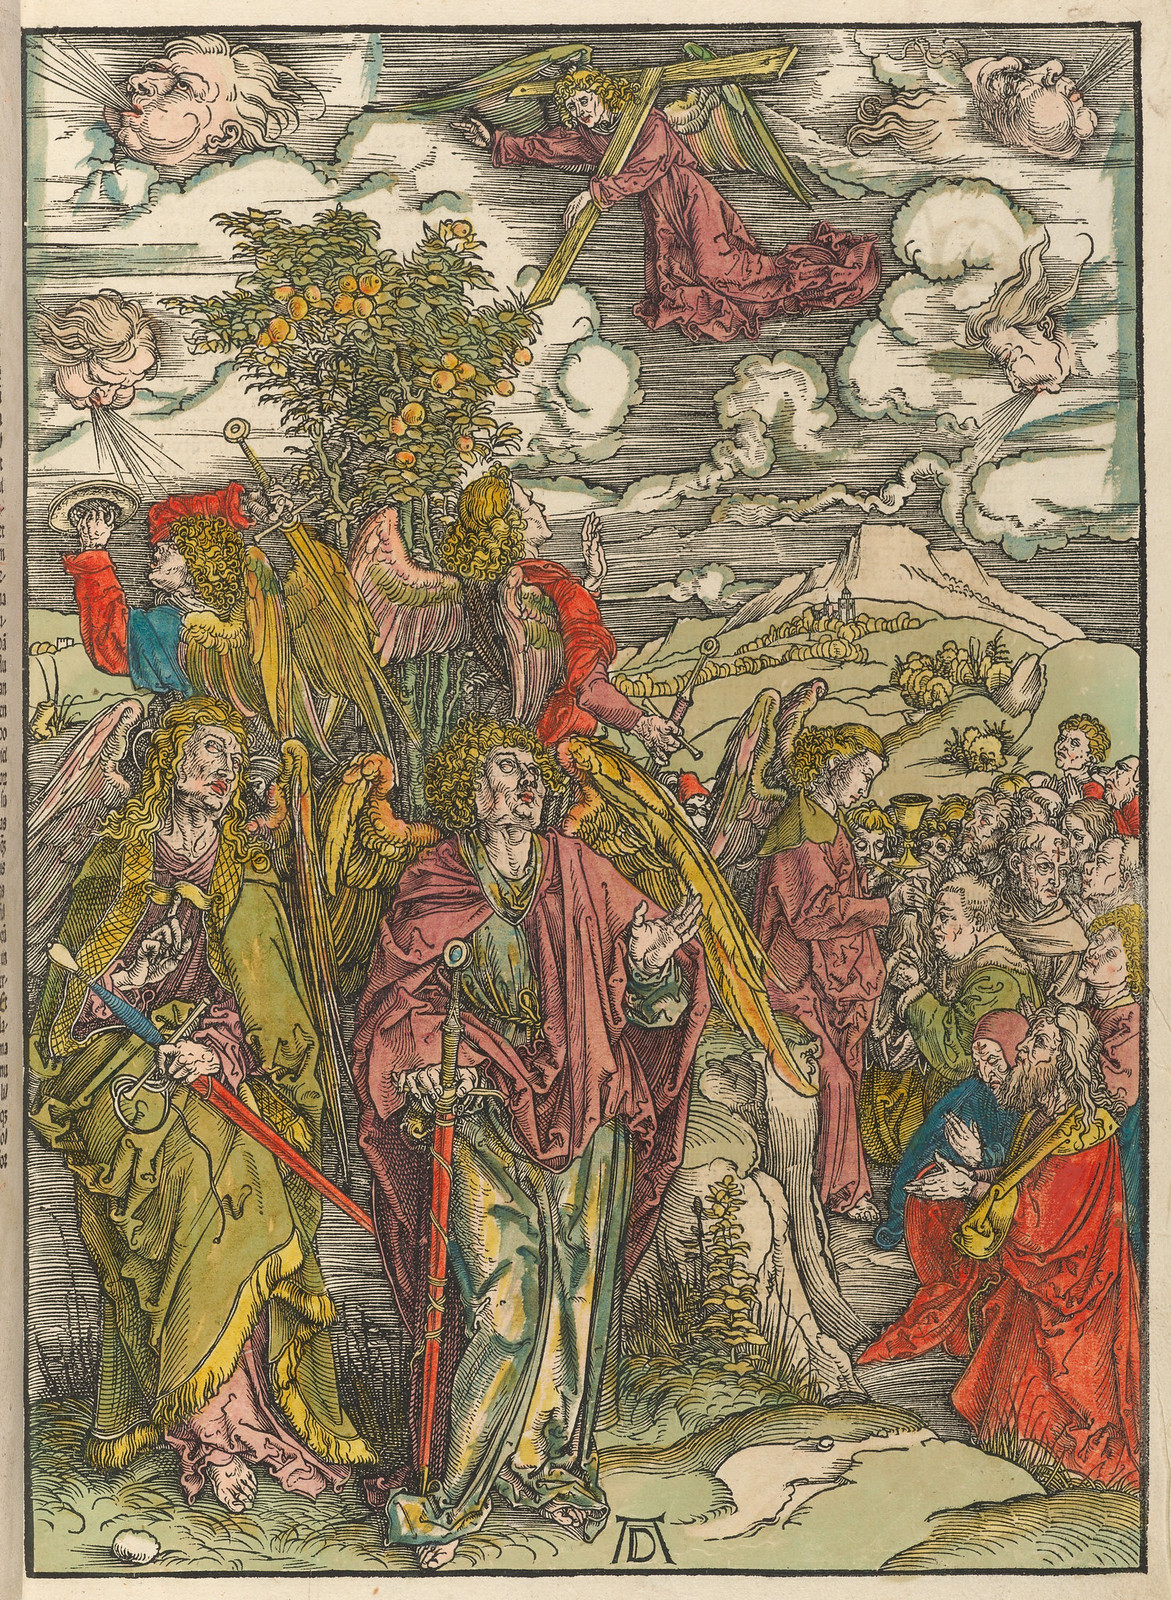 Albrecht Dürer - Four angels holding the winds, Plate six of fifteen from the Latin edition of The Apocalypse series,  hand colored, printed 1511